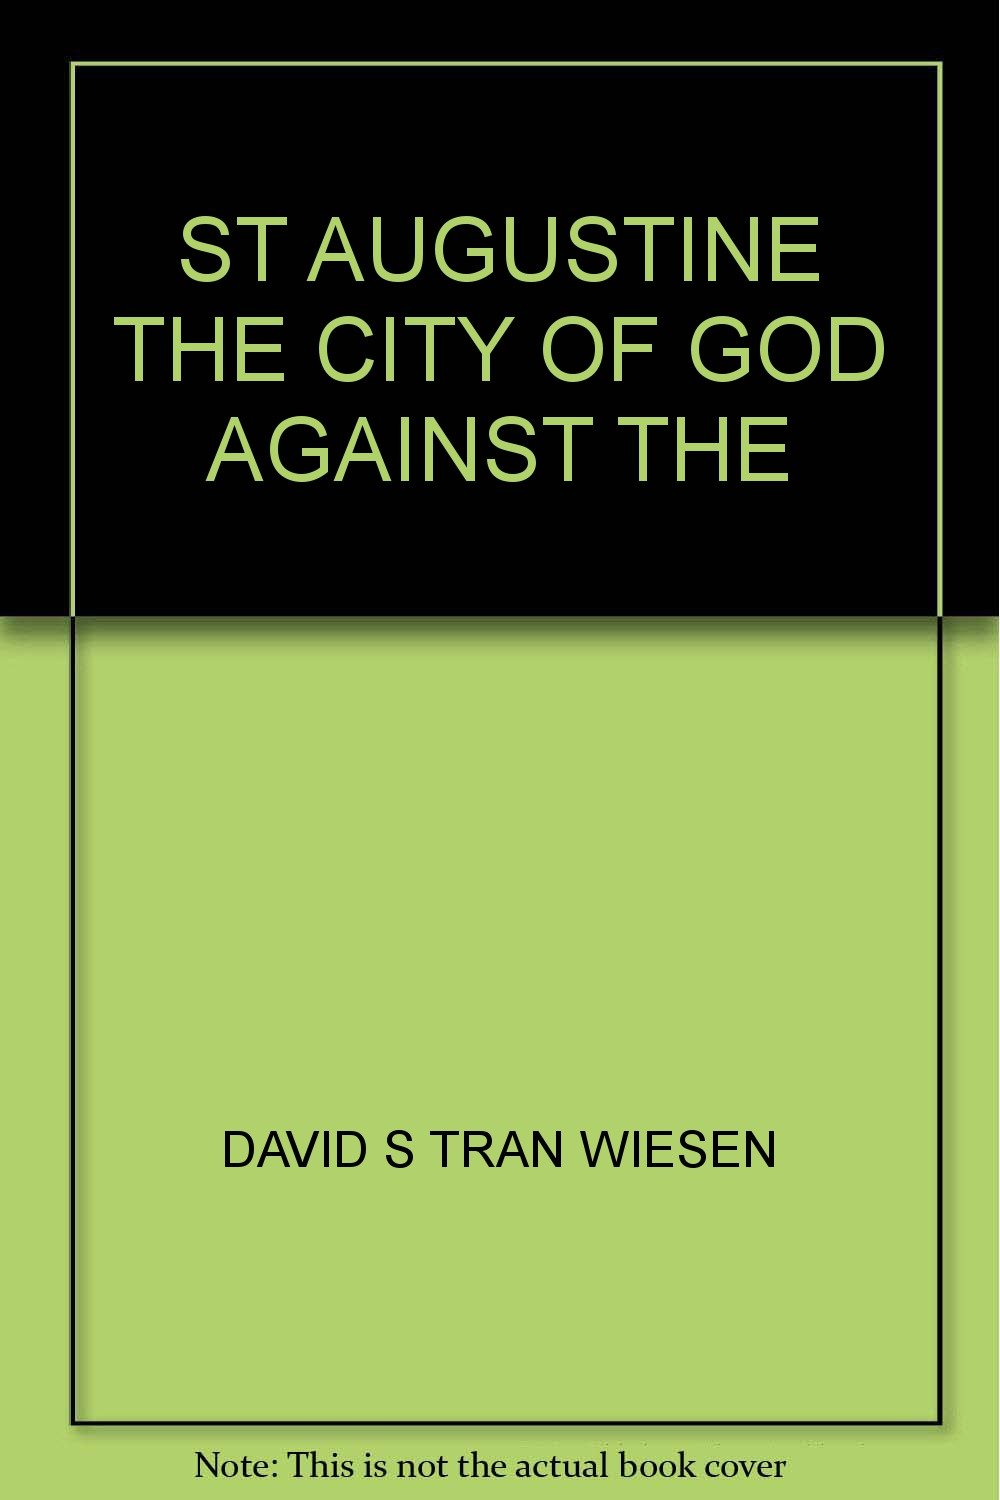 St Augustine The City Of God Against The David S Tran Wiesen